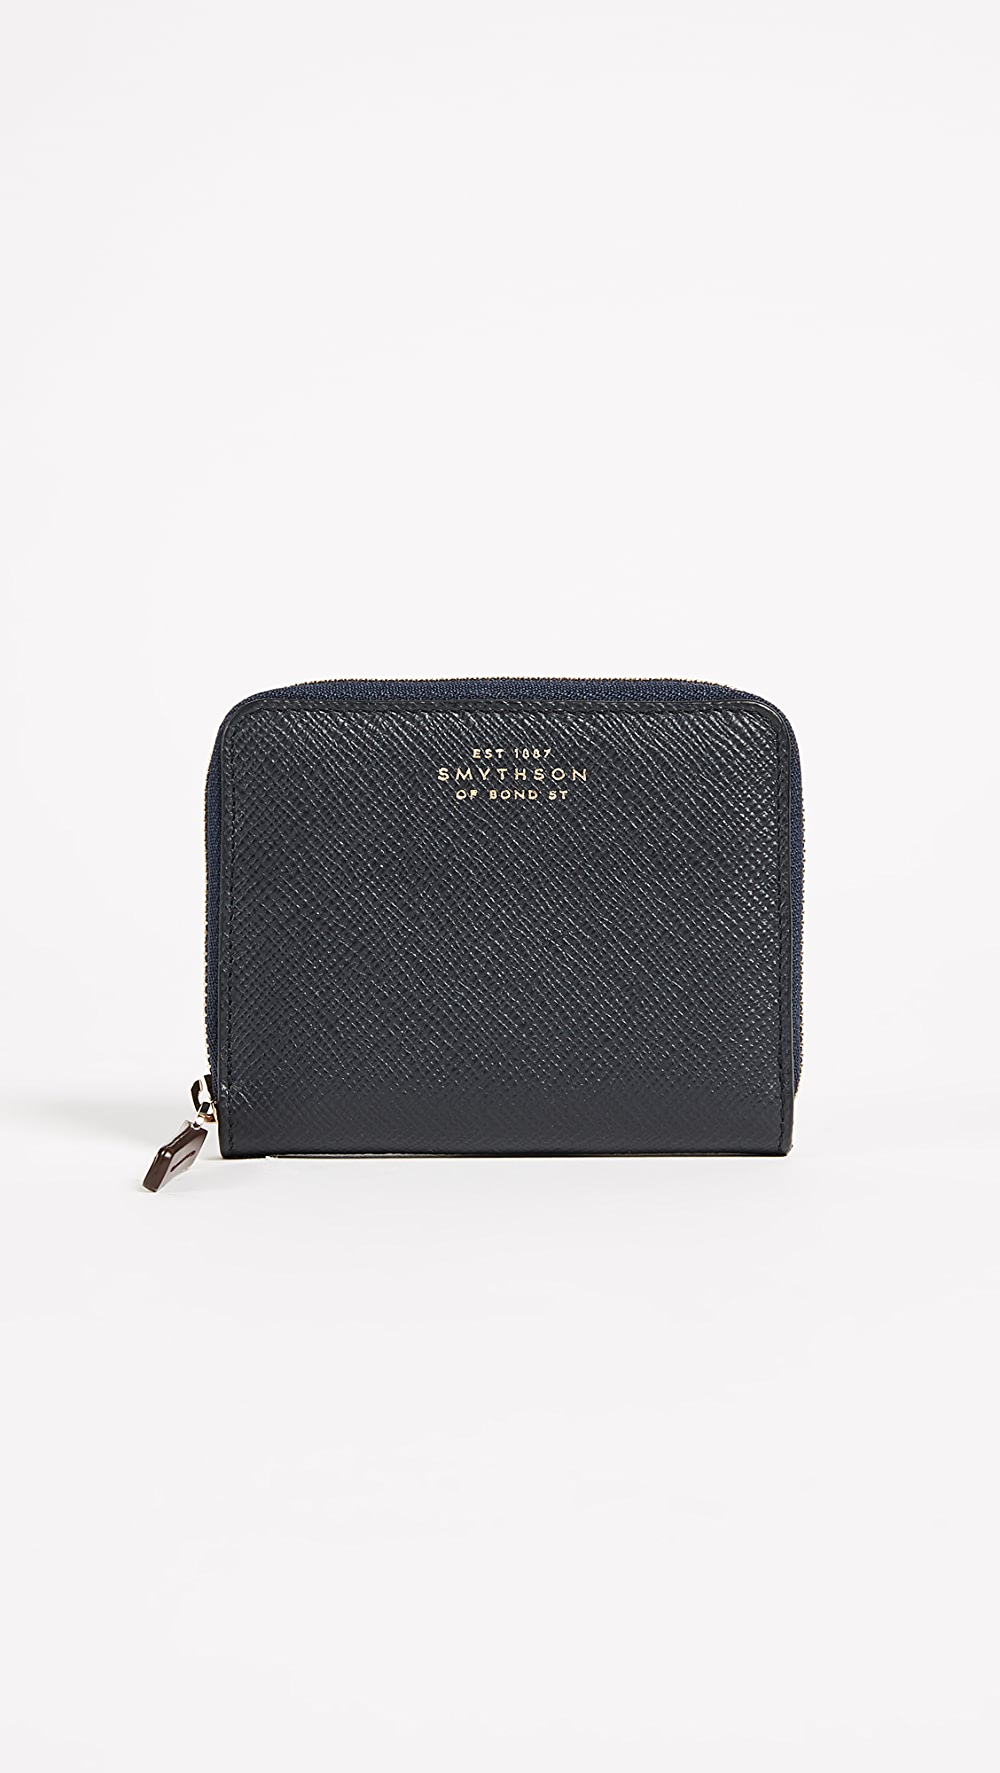 Aspiring Smythson - Panama Zip Coin Purse Be Friendly In Use